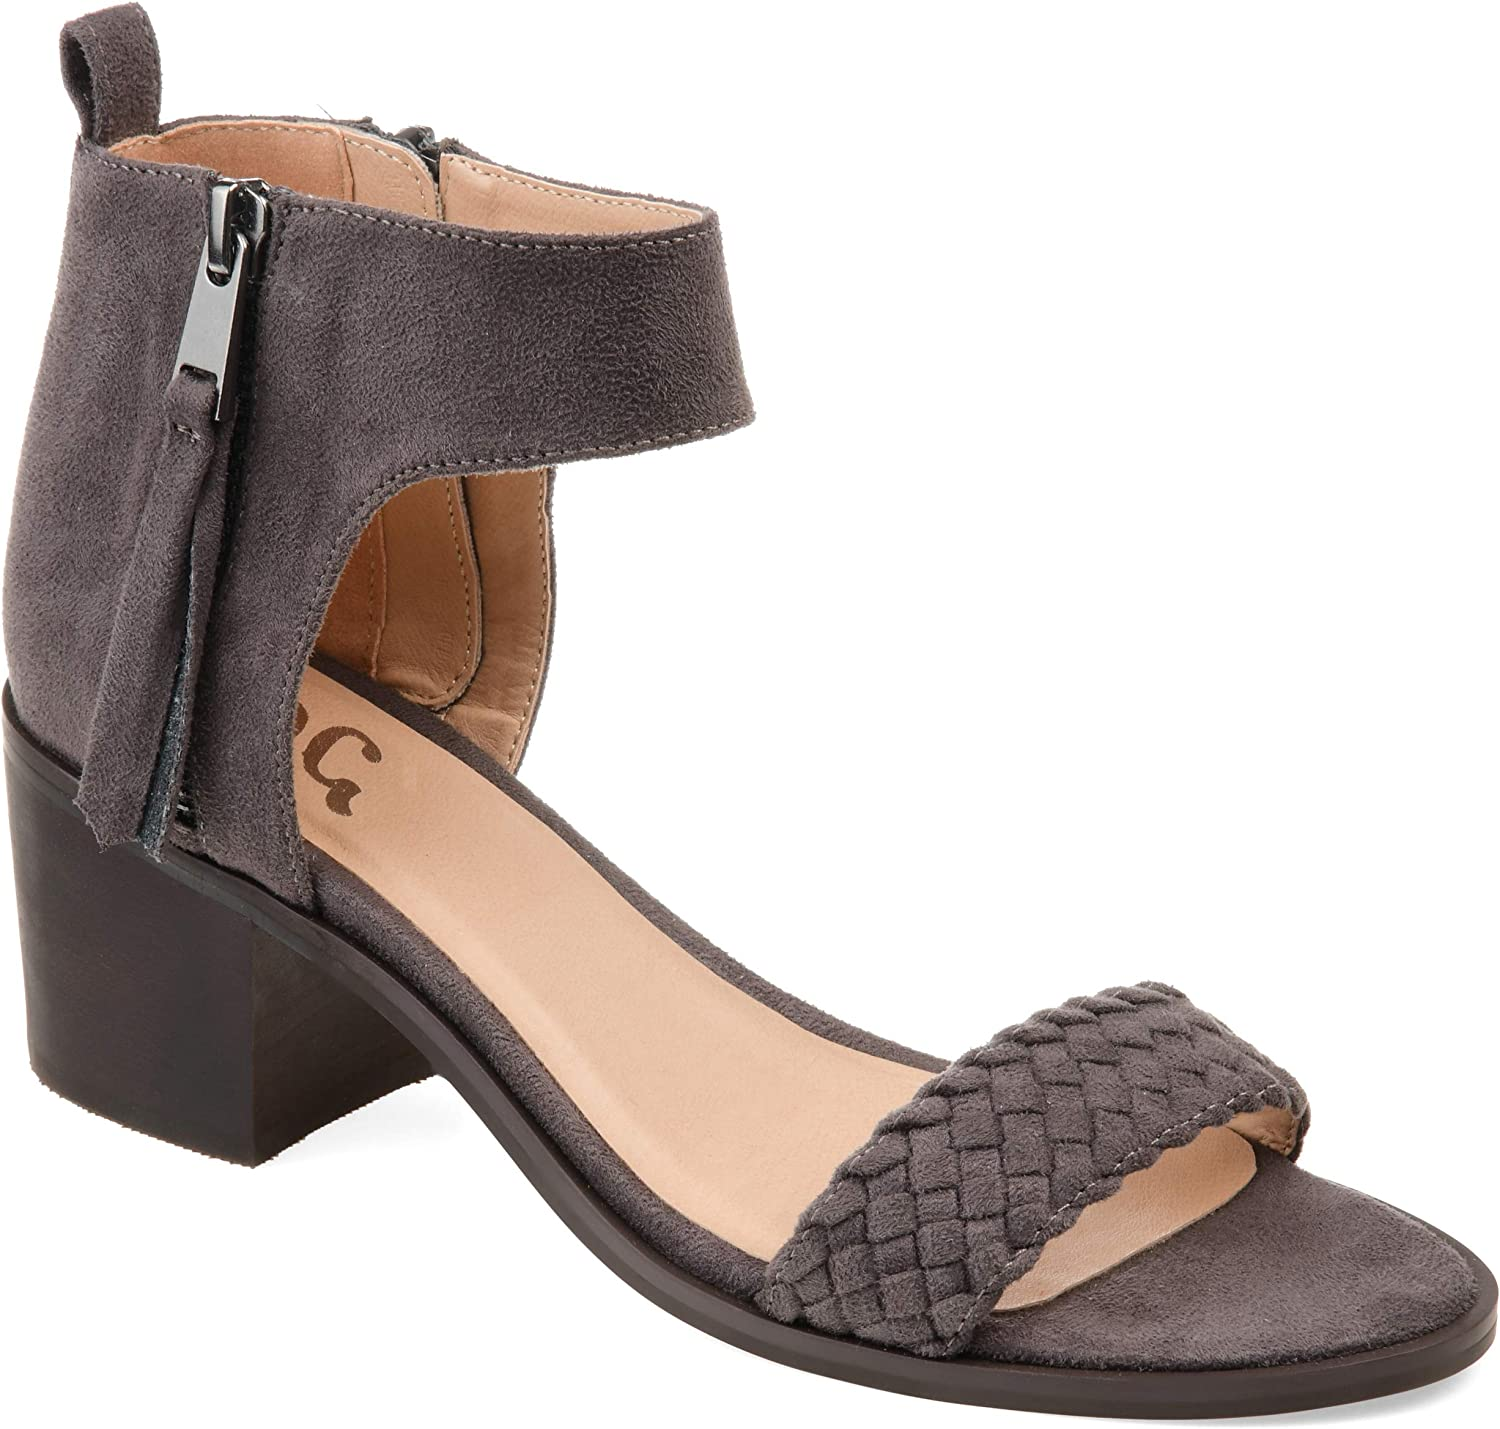 Journee Collection Womens Hunter Sandal